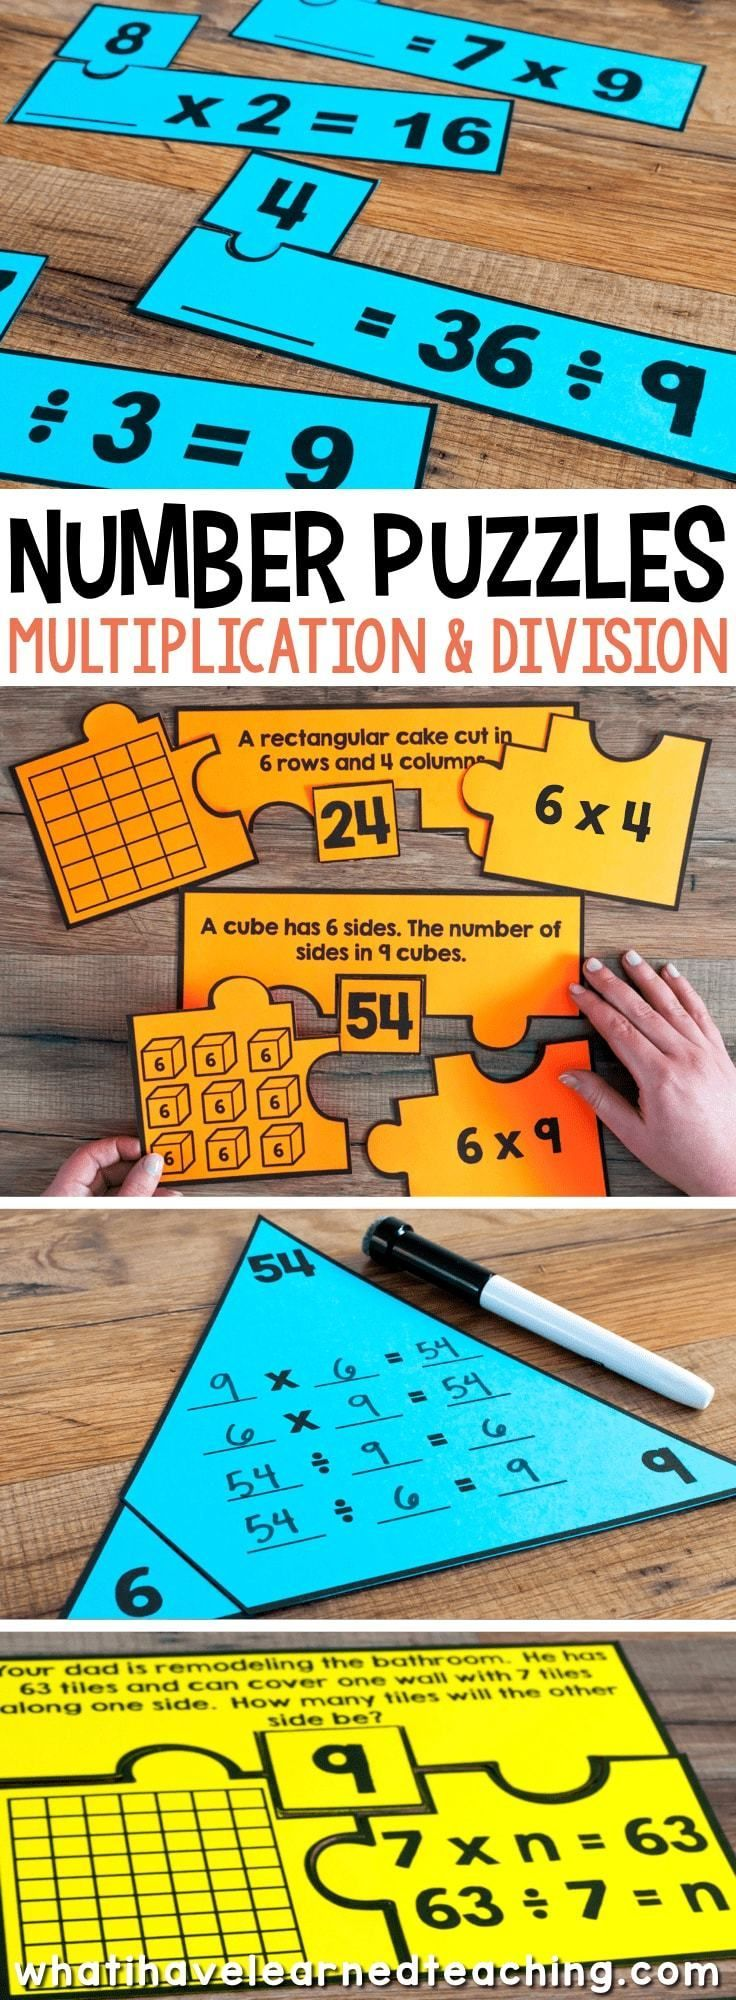 10331 best 4th grade common core images on pinterest teaching number puzzles for third grade engage students in using a variety of models strategies and kristyandbryce Choice Image